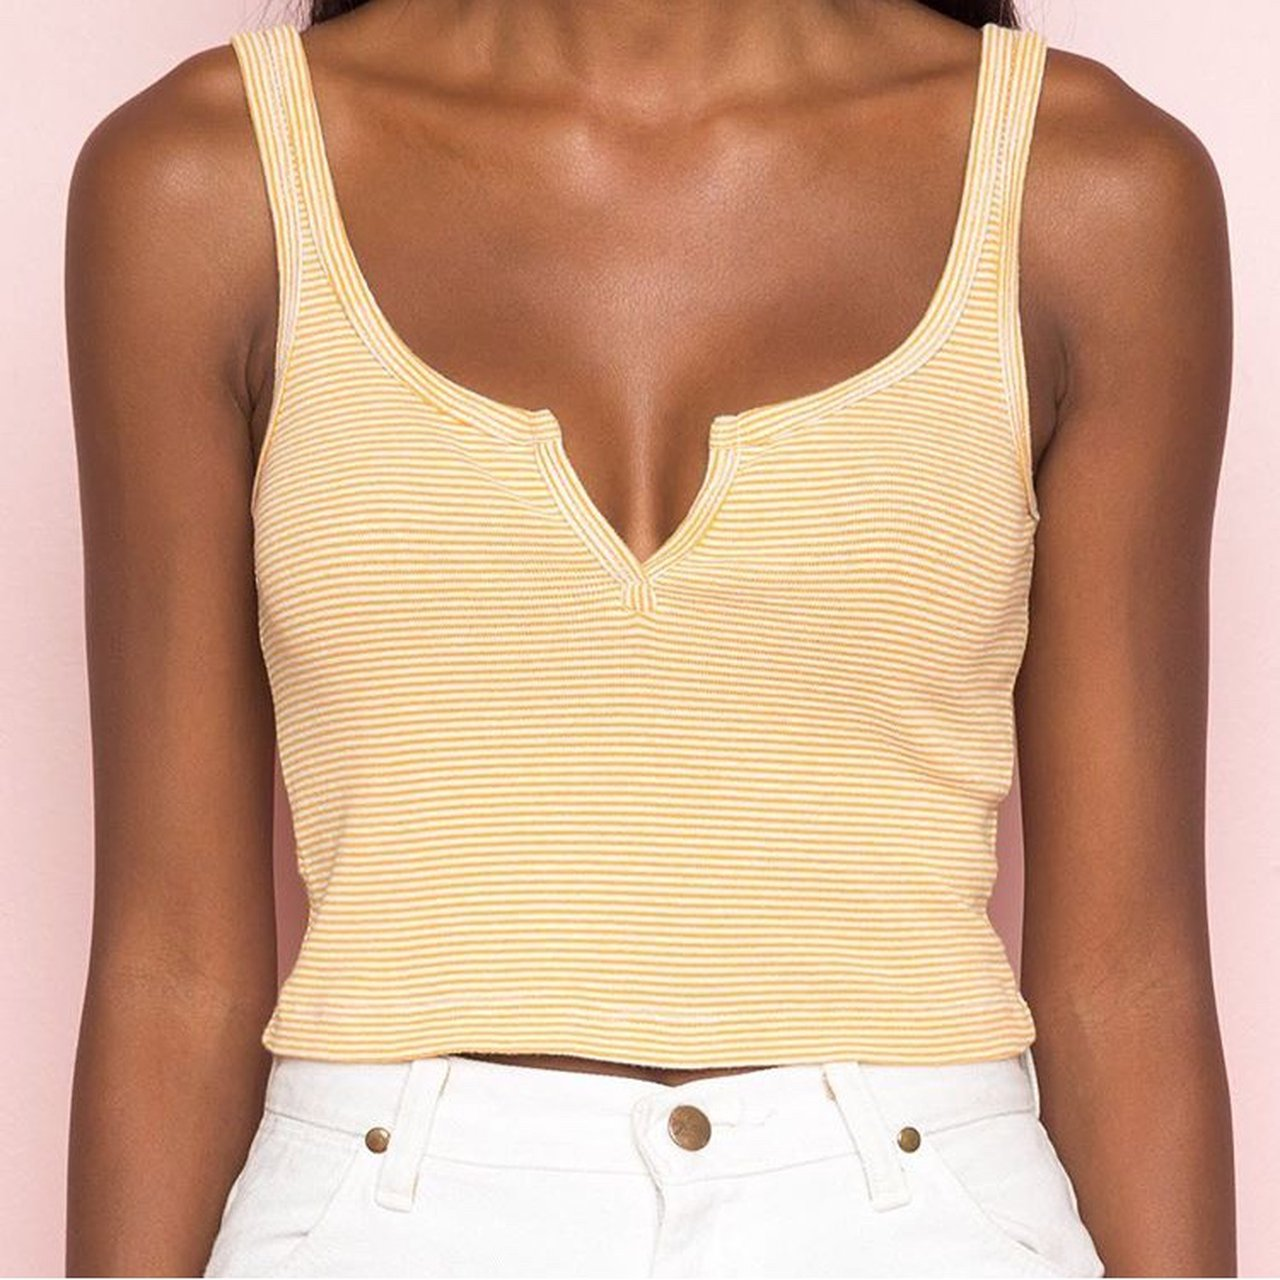 985503672dffea  dtaa. last year. United States. Brandy Melville yellow striped trisha tank